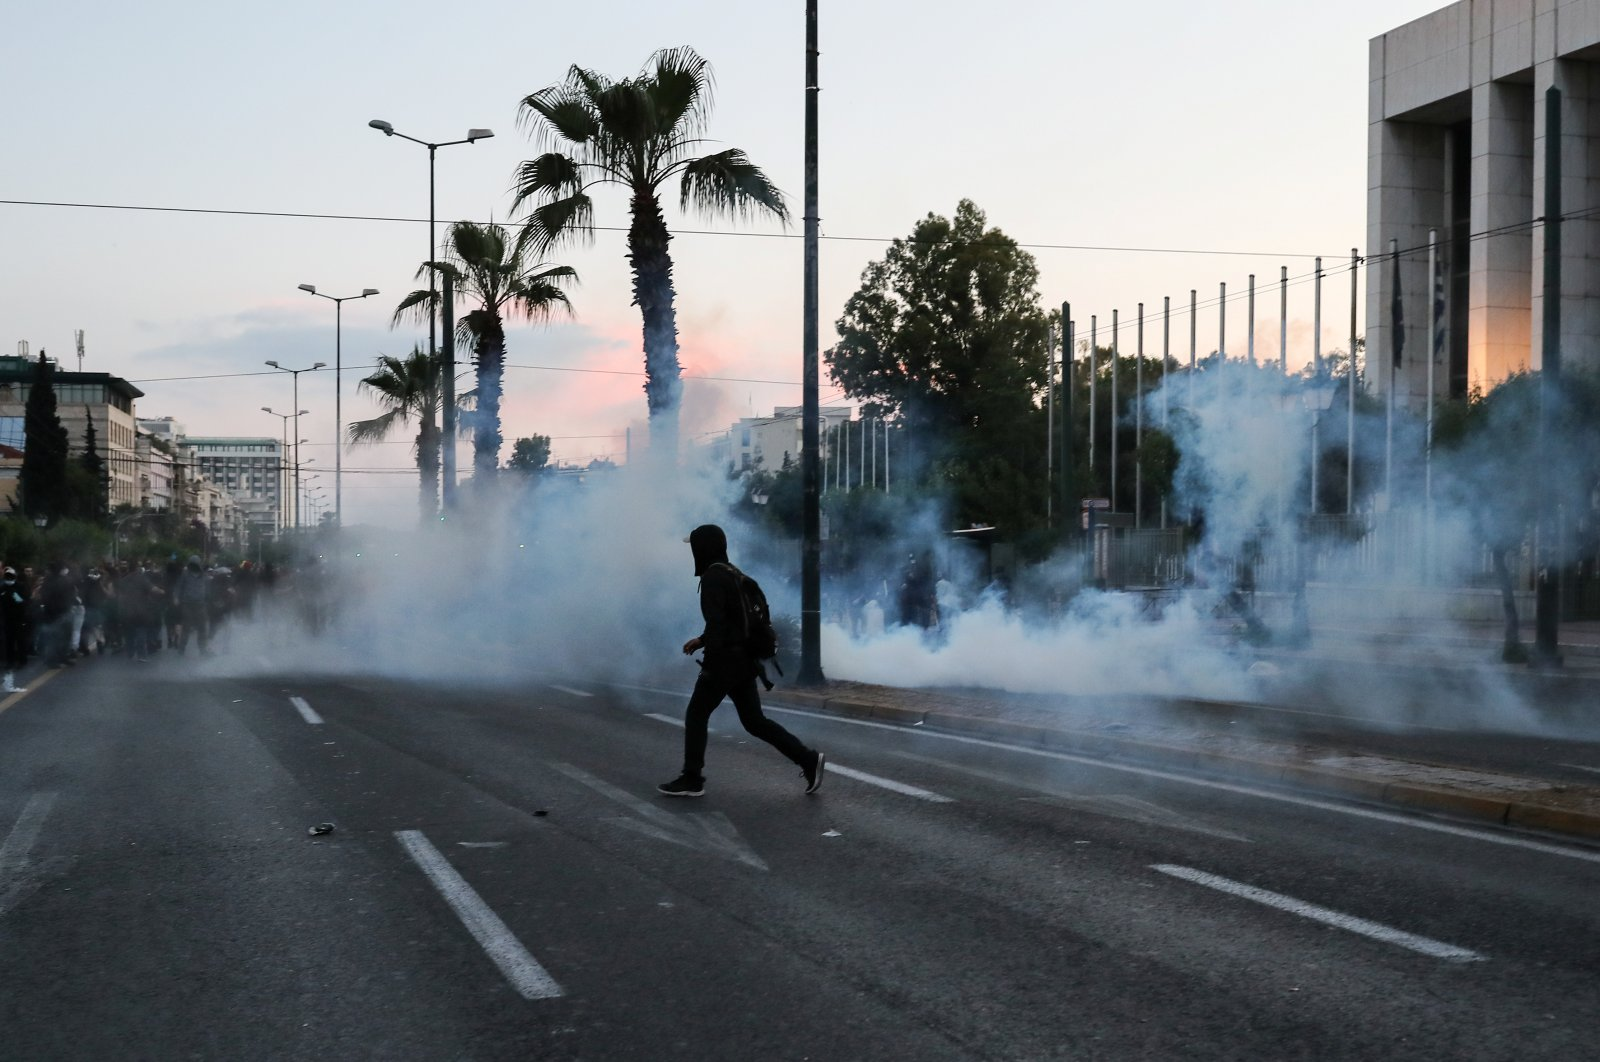 A protester outside the U.S. embassy in Athens walks next to tear gas, Athens, June 3, 2020. (REUTERS Photo)